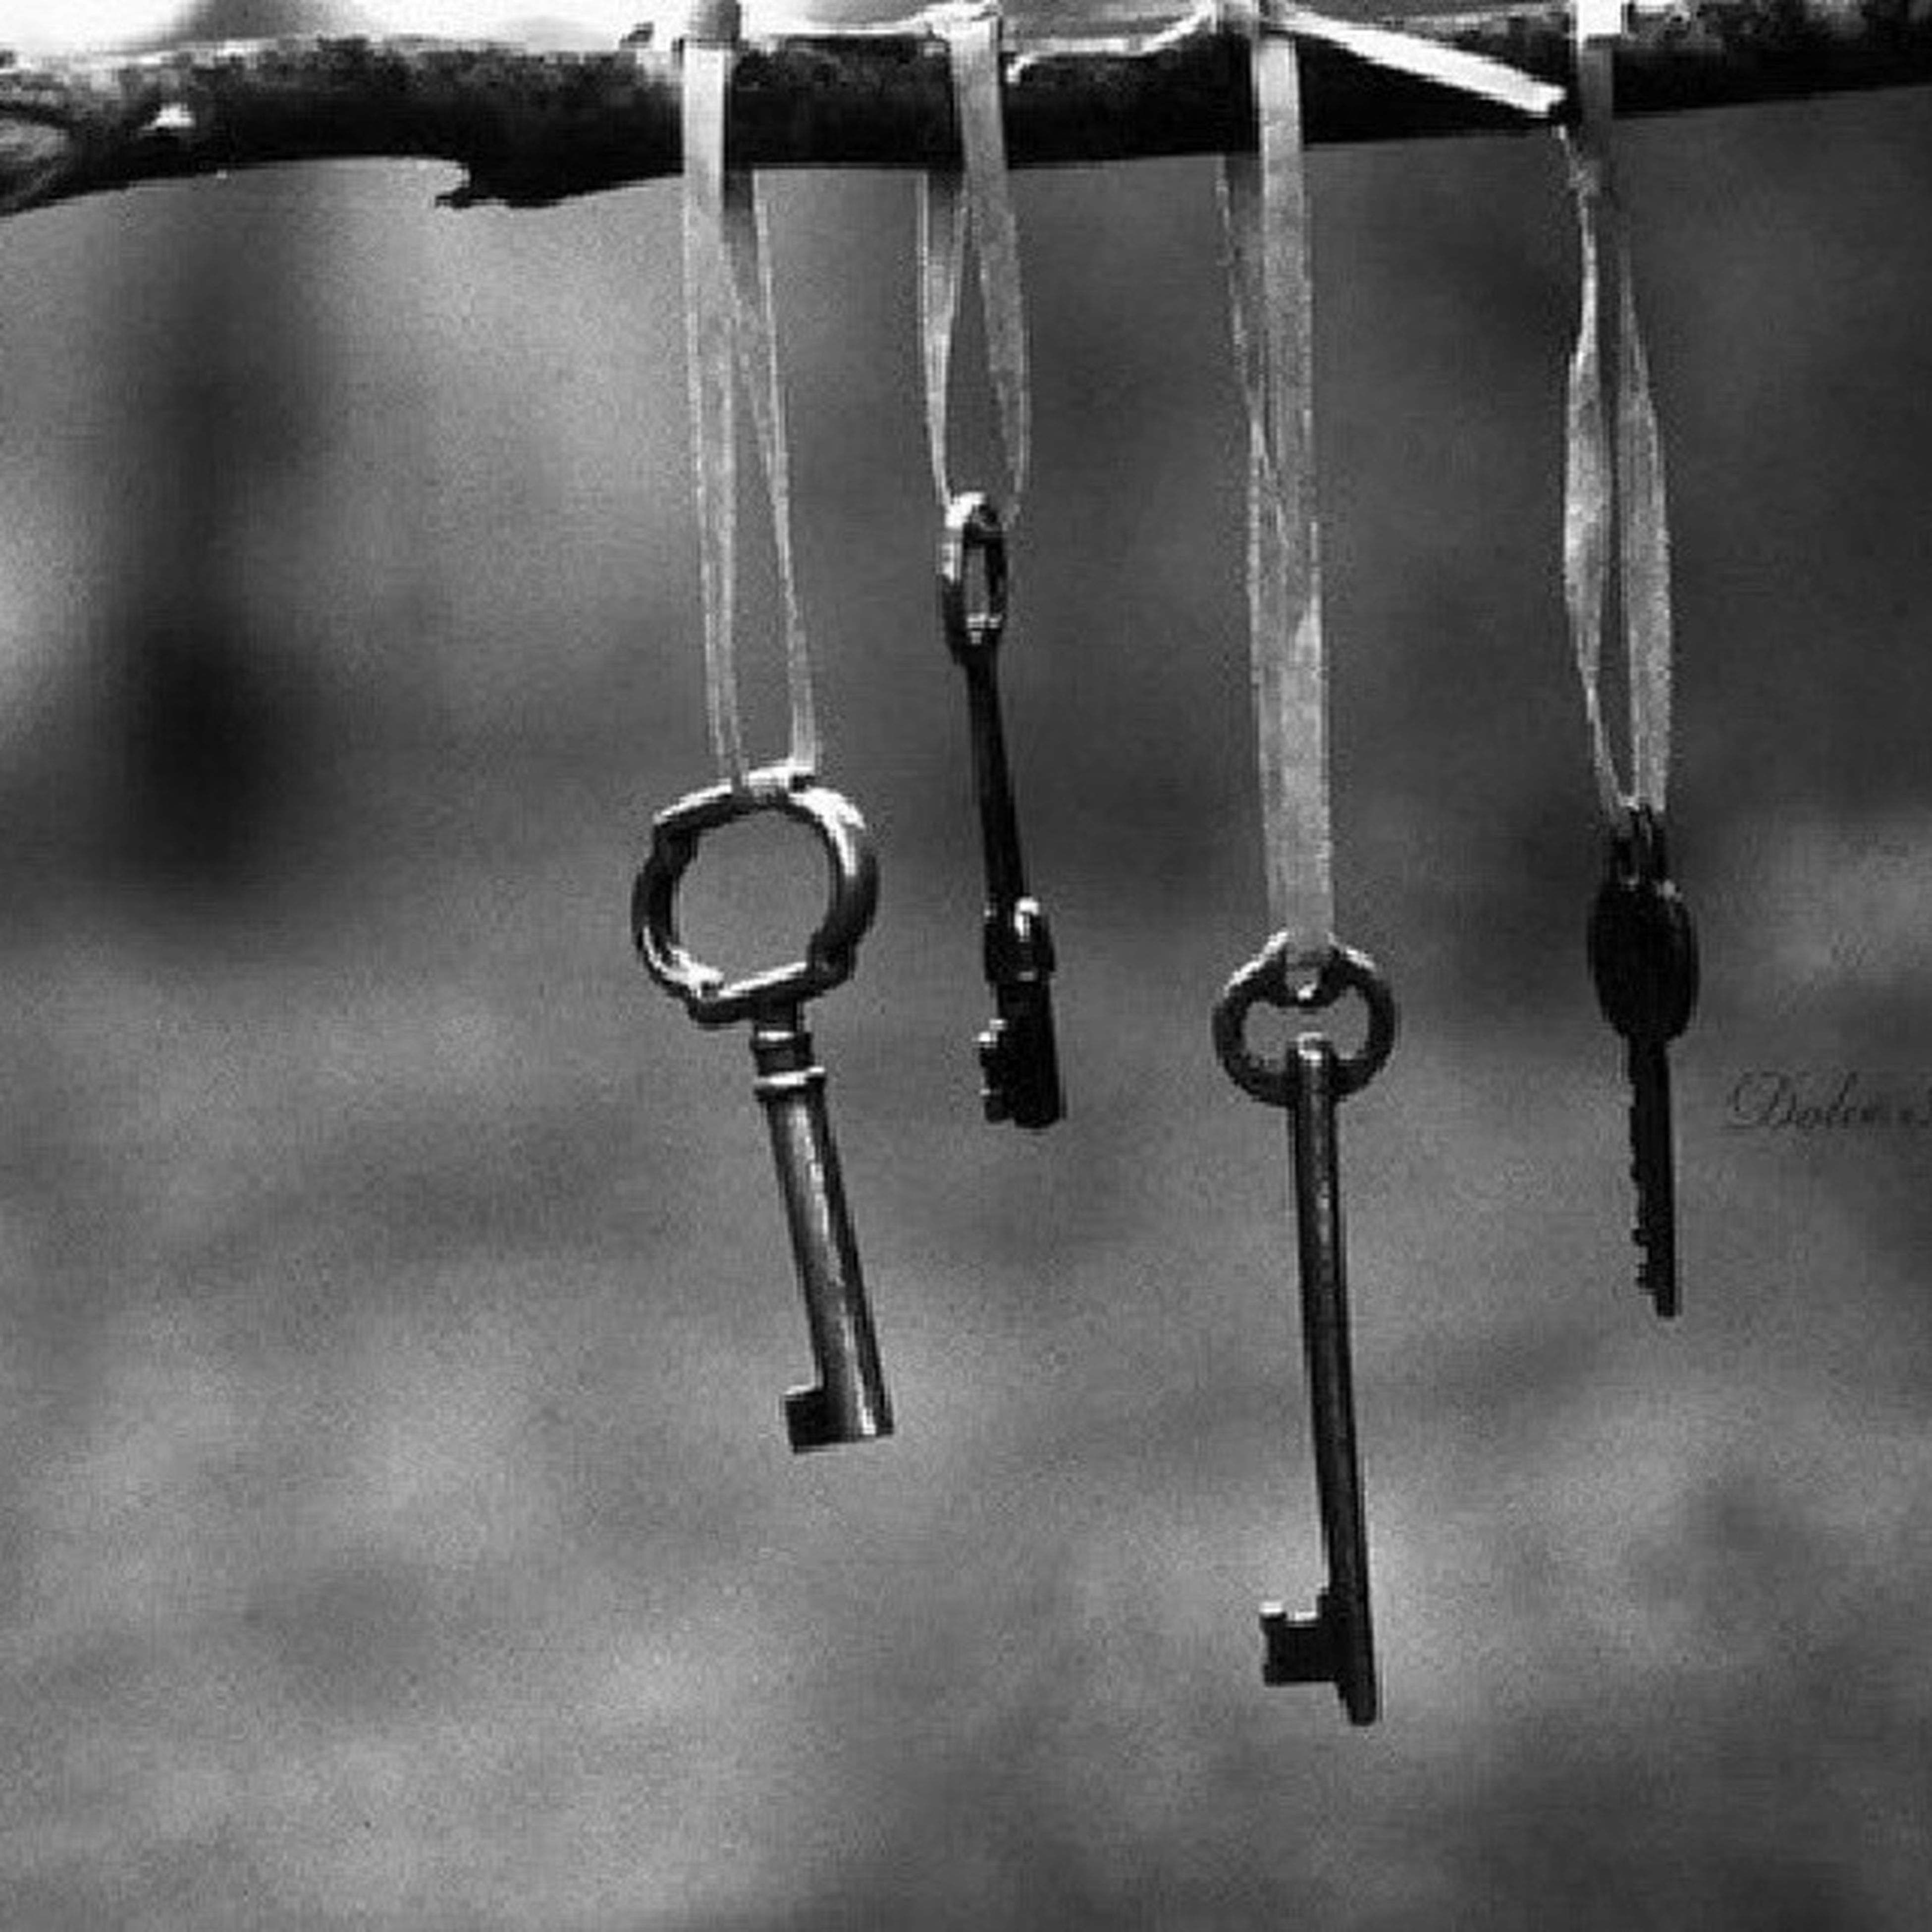 hanging, close-up, indoors, metal, focus on foreground, still life, no people, in a row, reflection, metallic, table, day, selective focus, shiny, simplicity, decoration, group of objects, rope, side by side, water